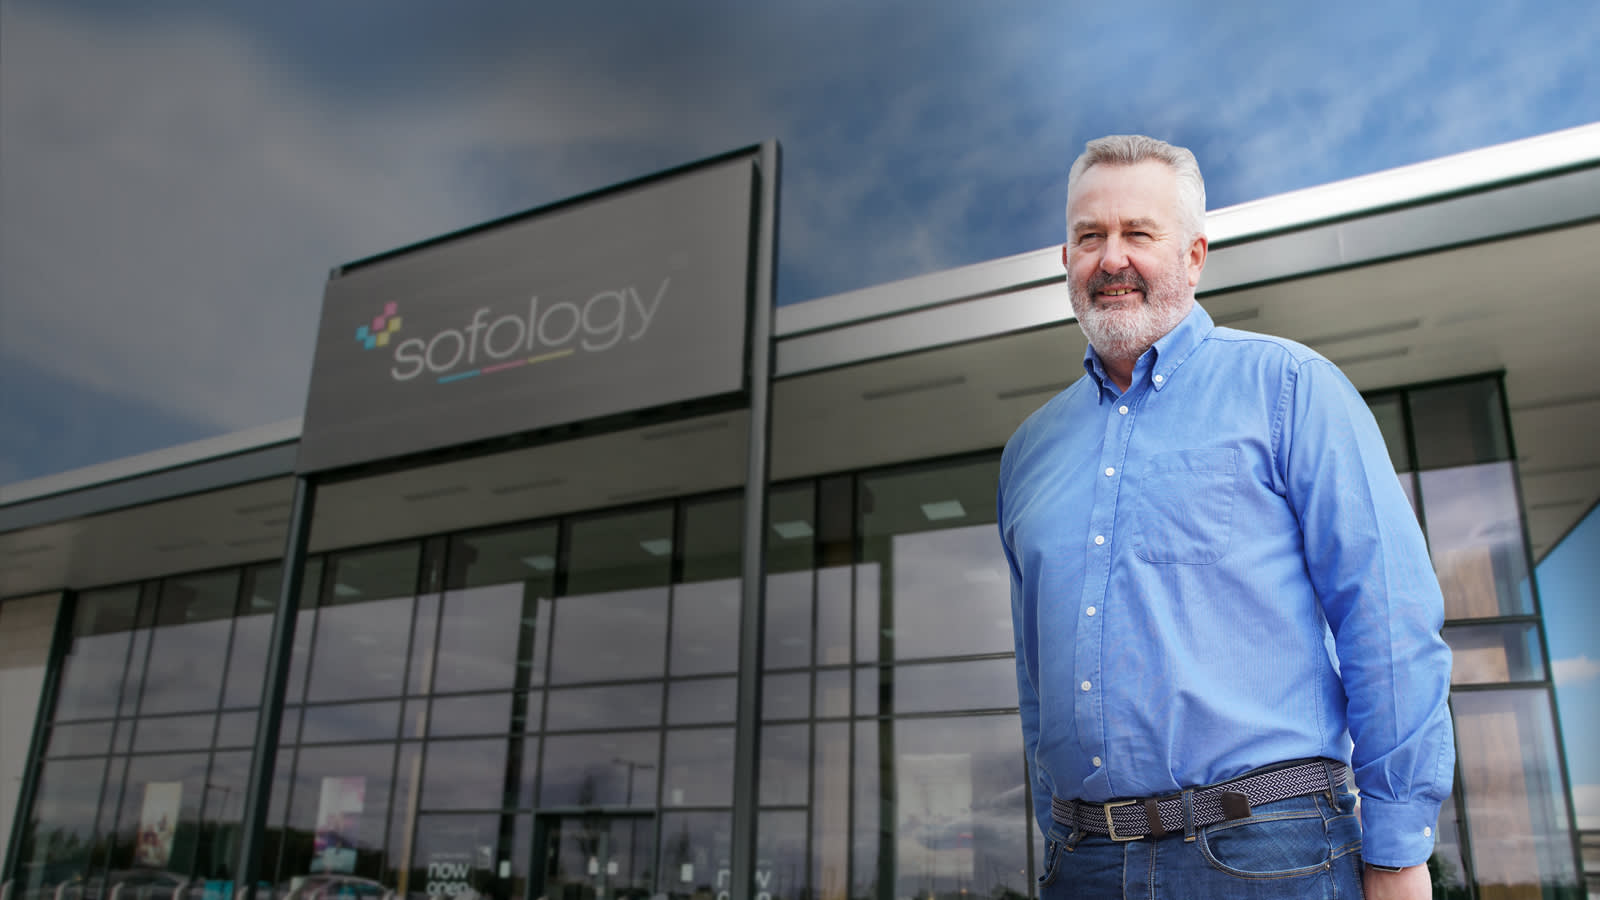 Sofology head of property